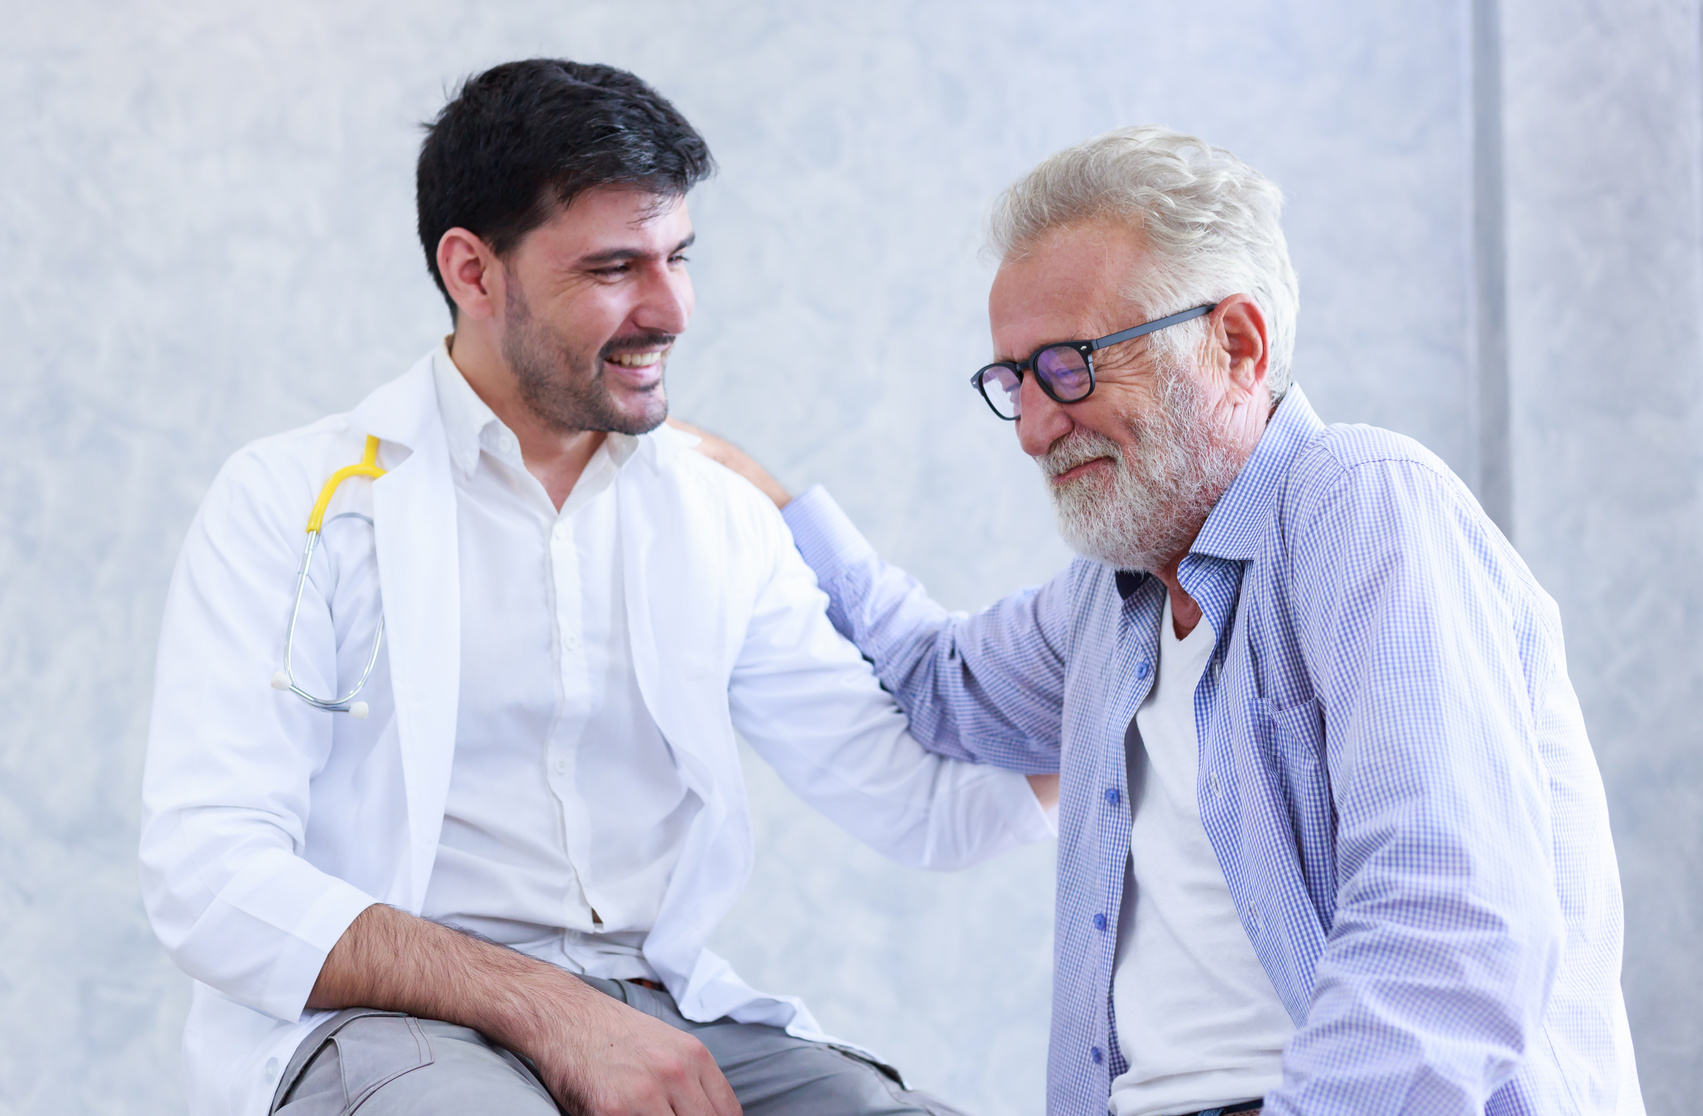 How Proper Engagement Can Turn One-Time Patient Interactions Into Lasting Relationships